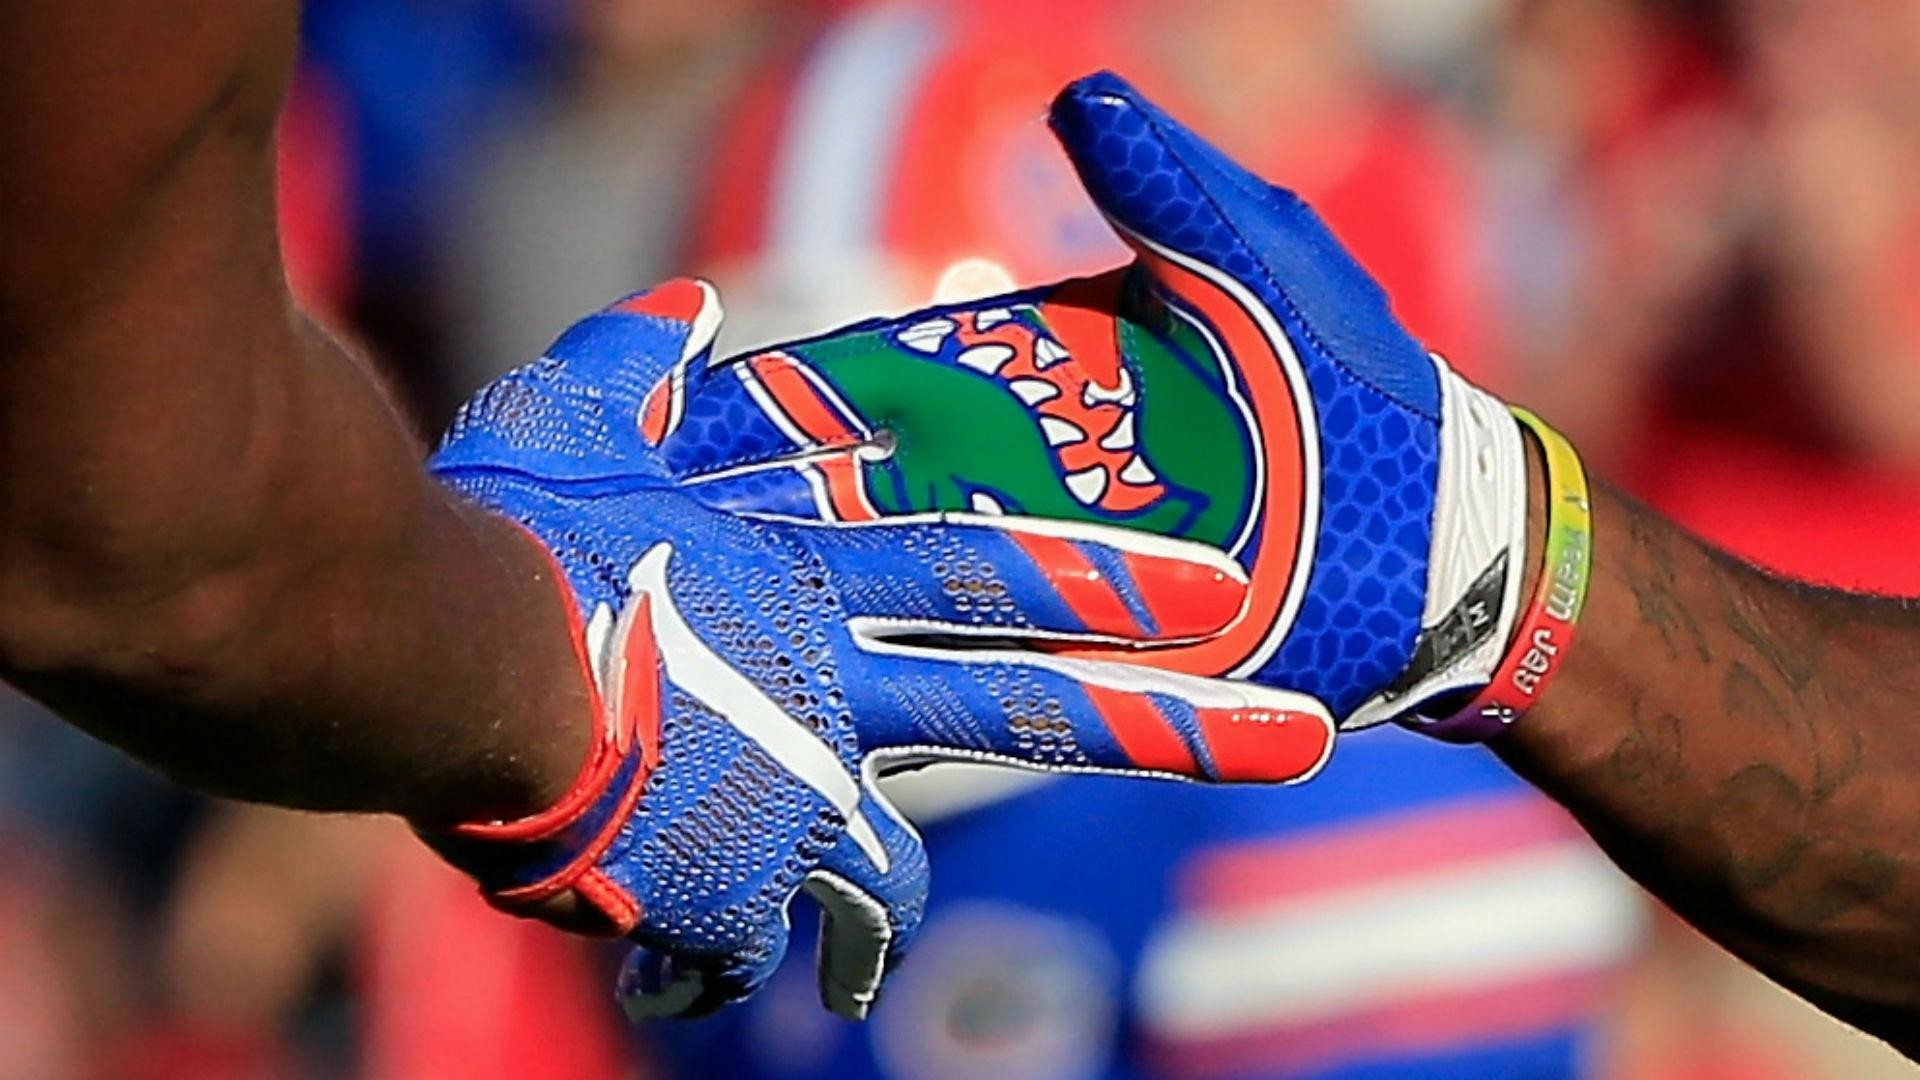 … florida gators backgrounds page 2 of 3 wallpaper wiki …